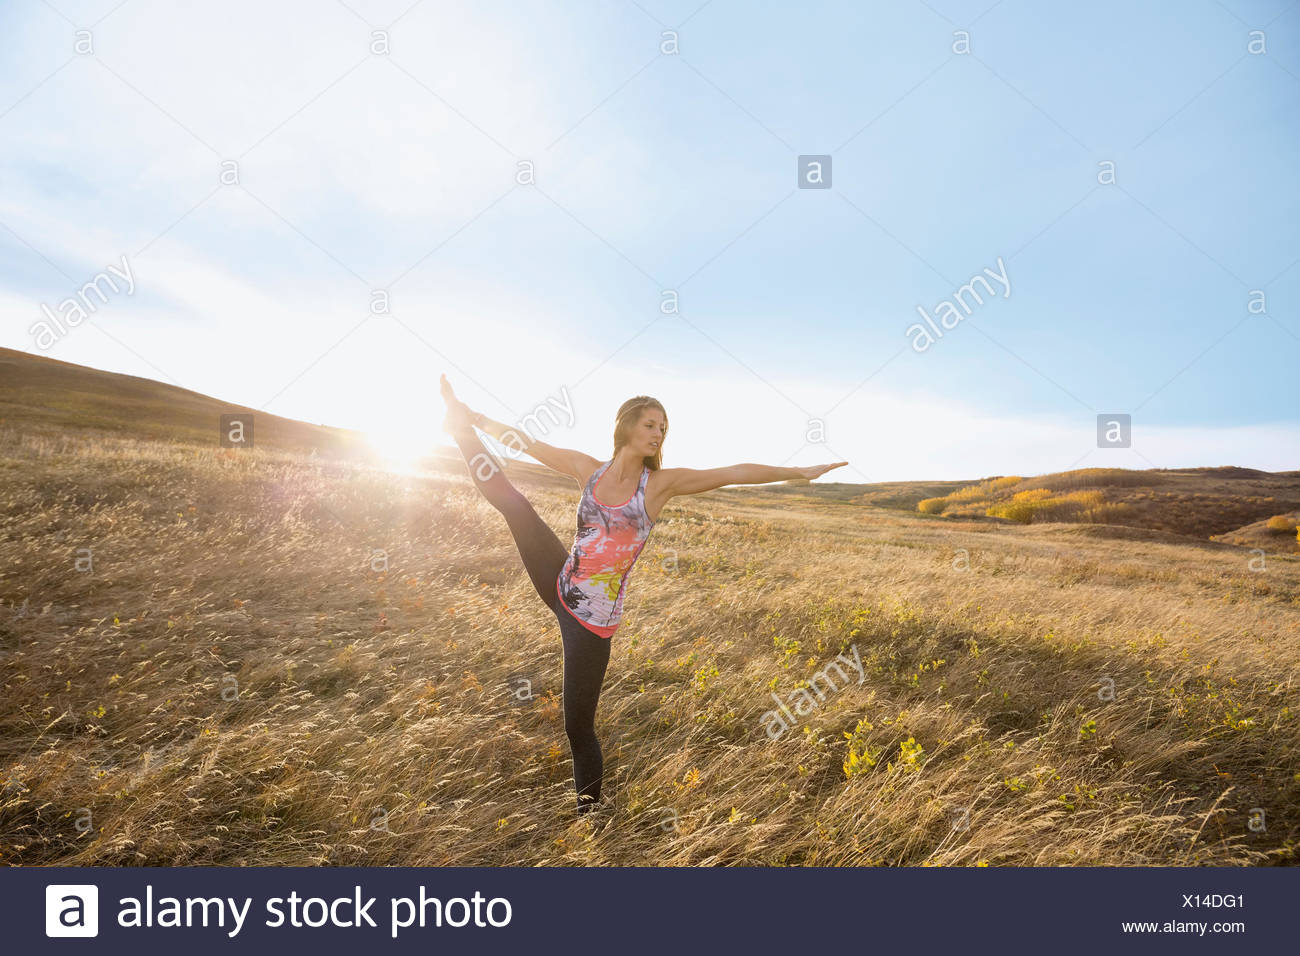 Woman practicing yoga in sunny rural field - Stock Image